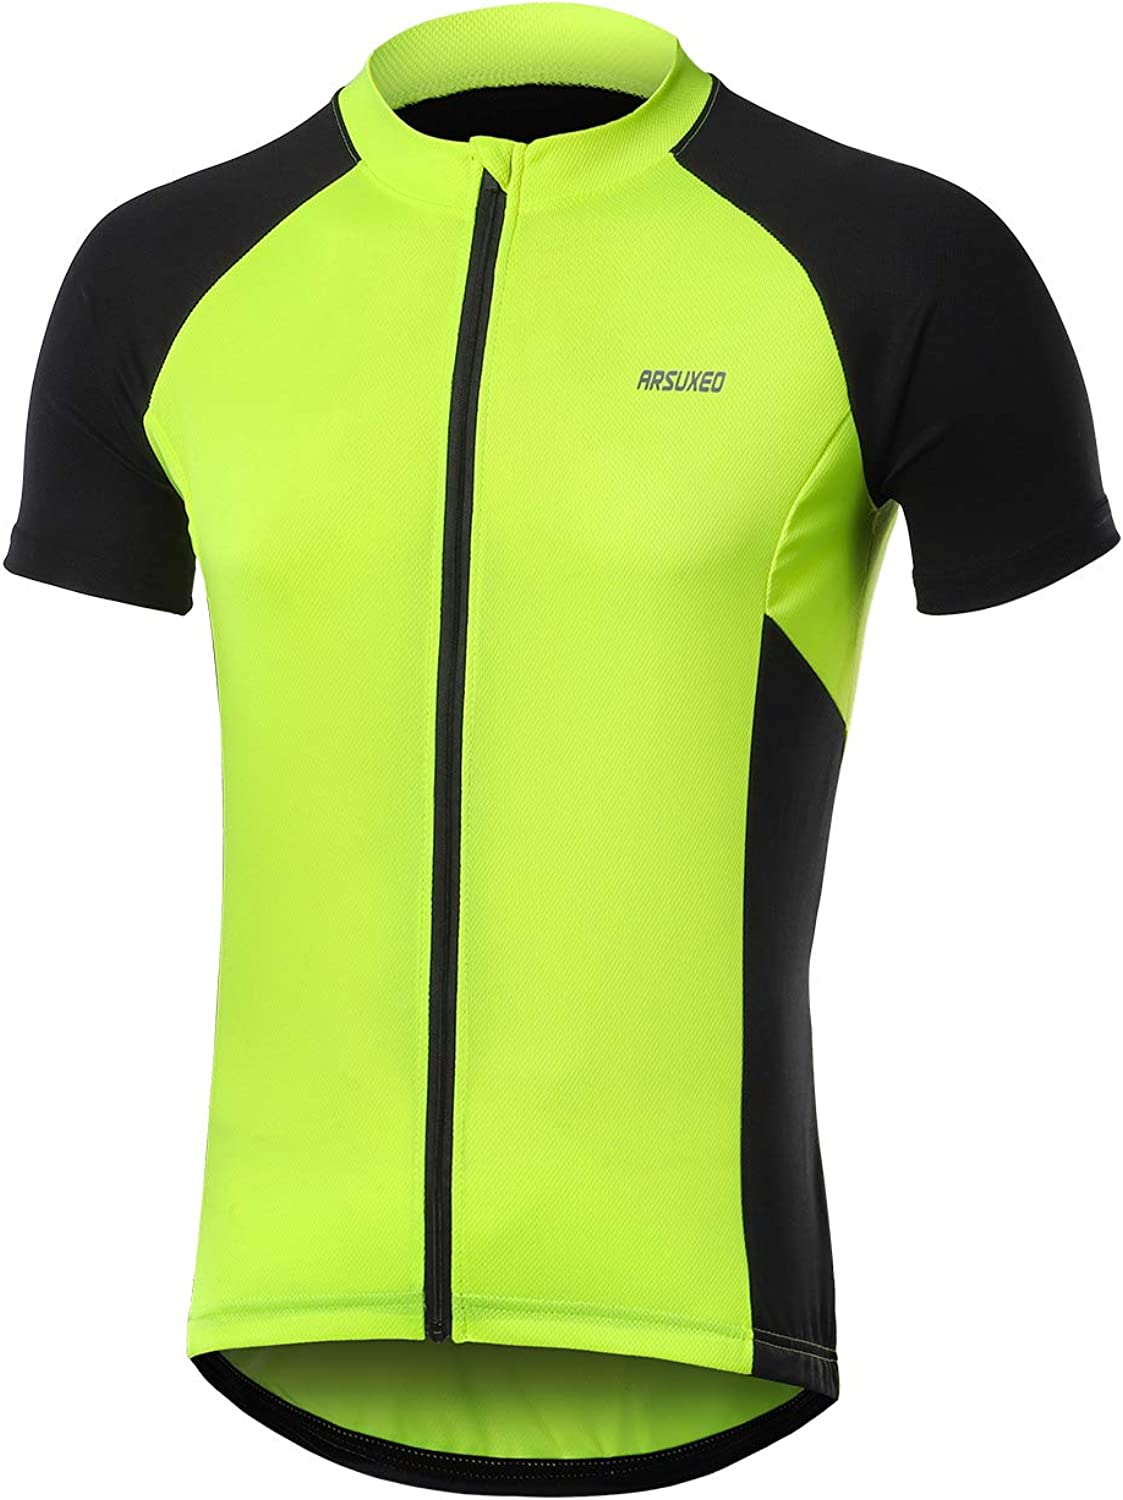 ARSUXEO Men's Short Sleeves Cycling Bicycle Bike Jersey Shir Max Brand Cheap Sale Venue 77% OFF MTB